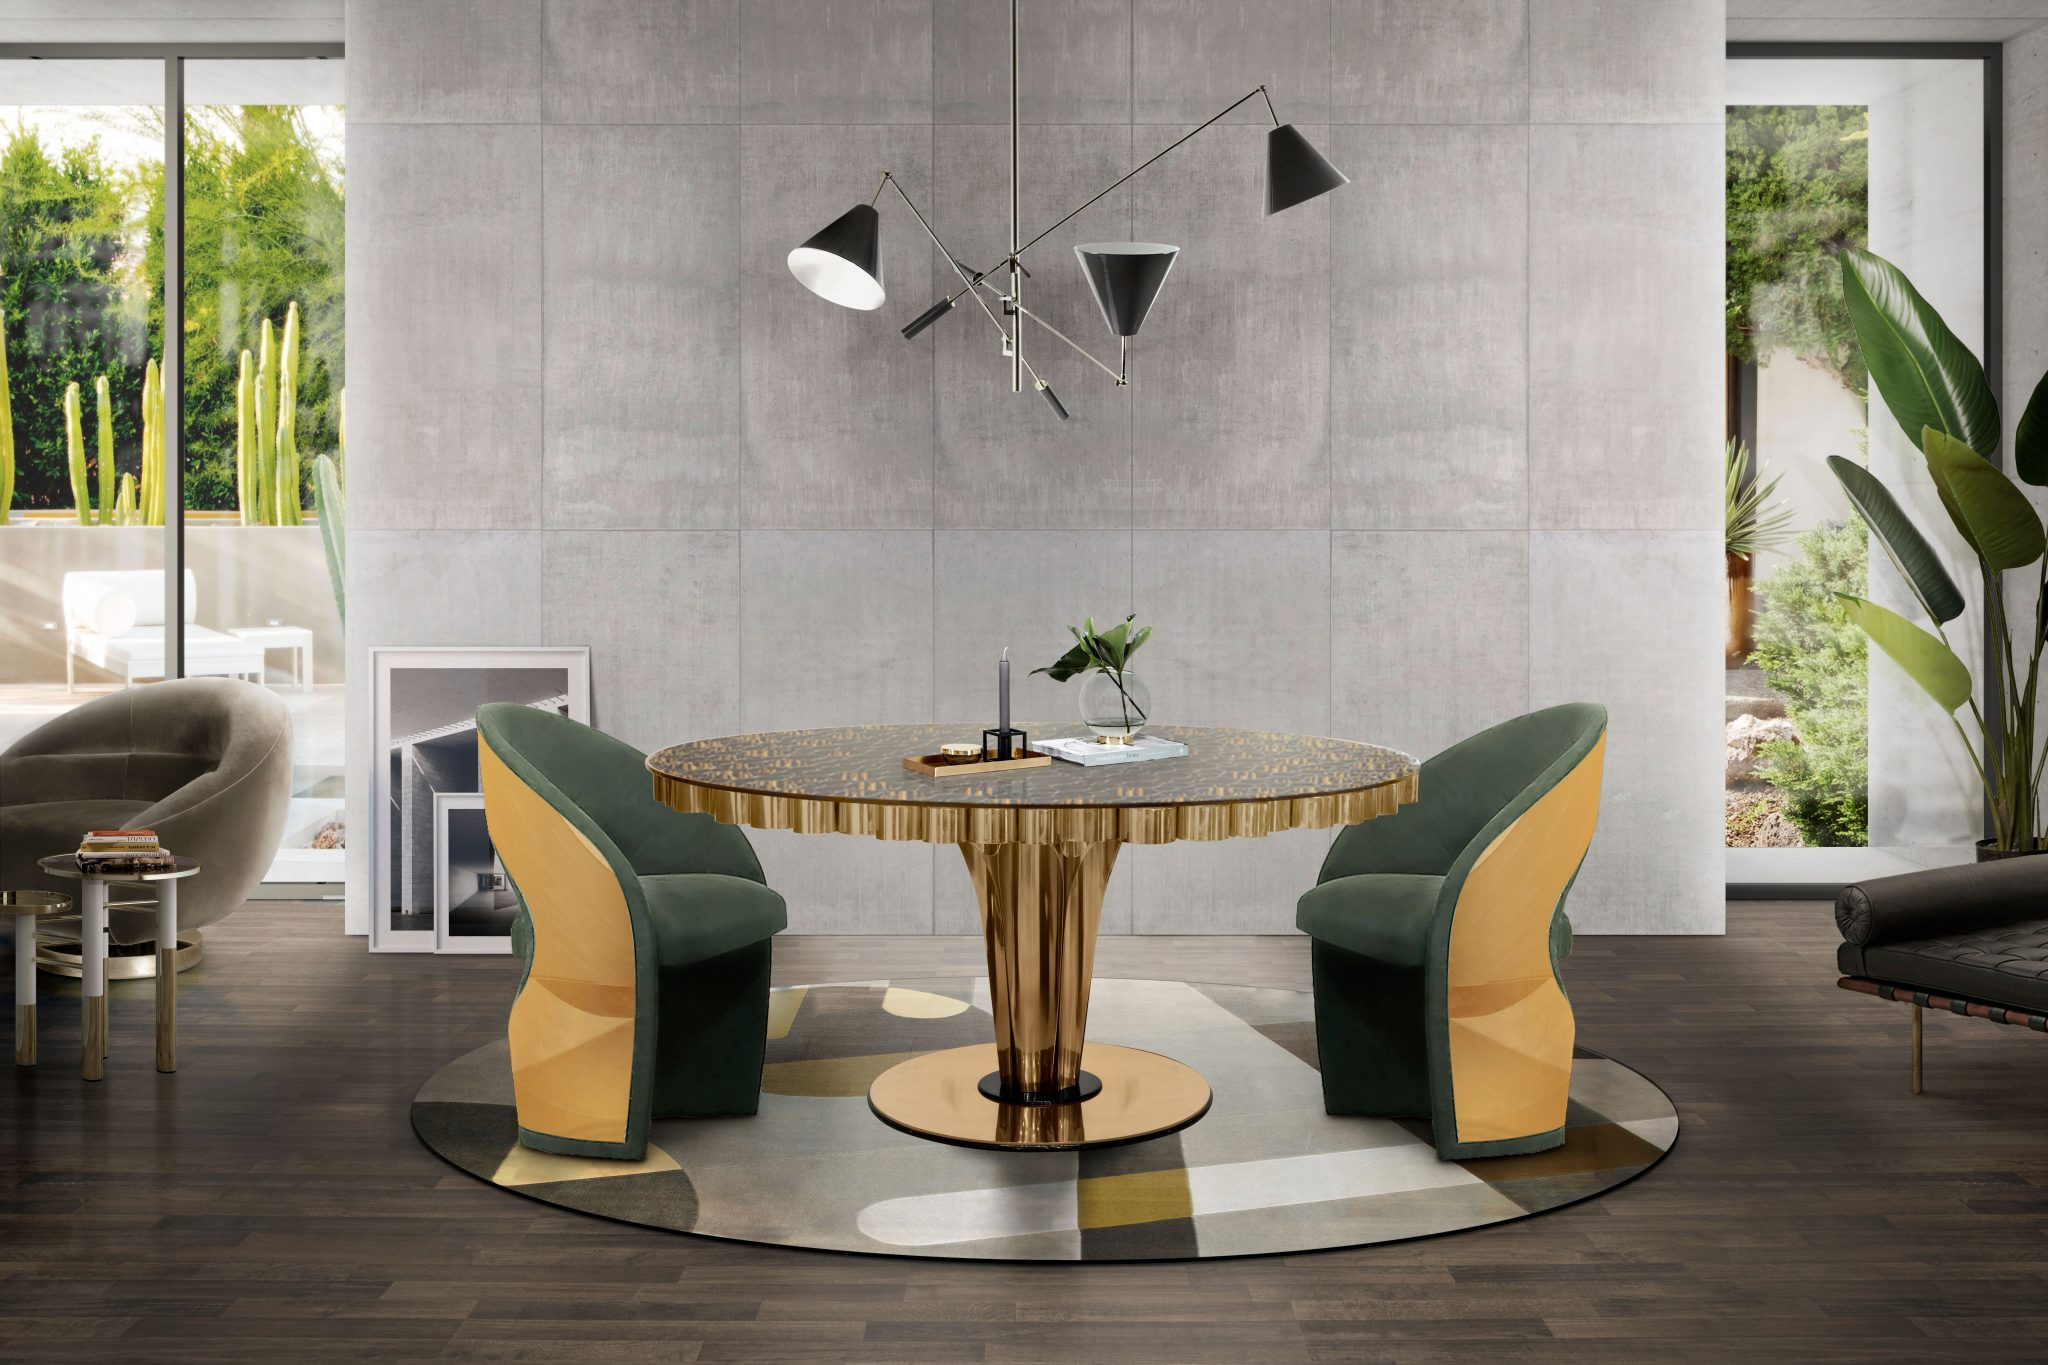 STYLING YOUR DINING ROOM DESIGN WITH GREENISH HIGHLIGHTS